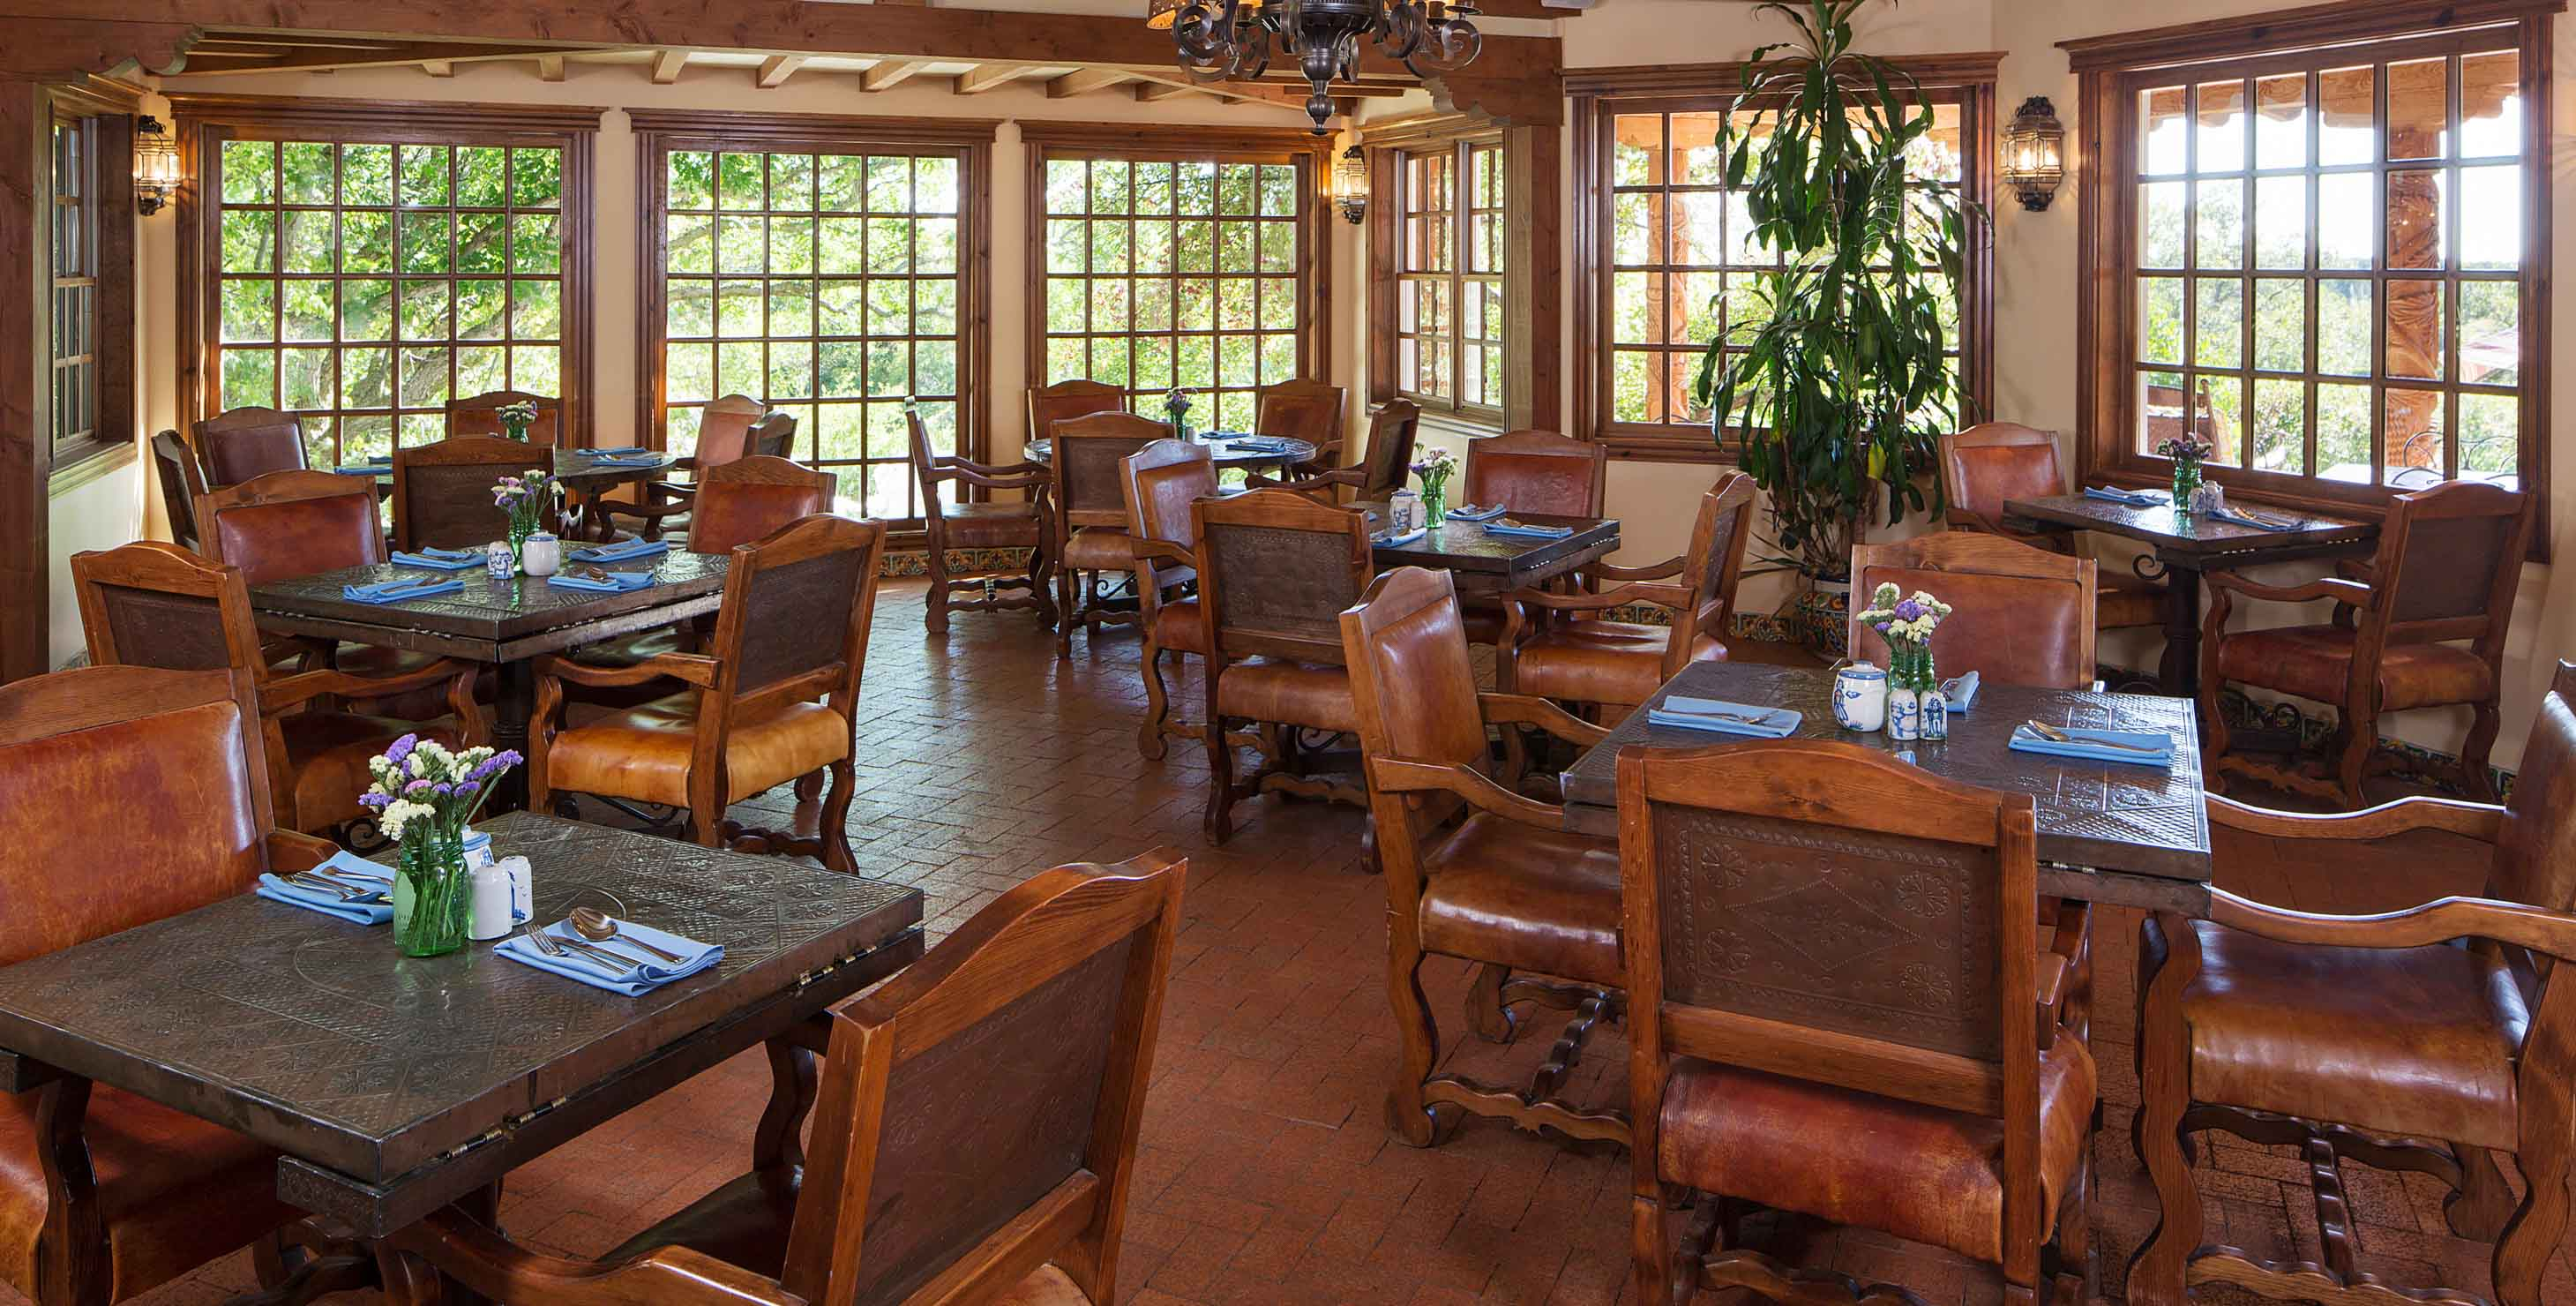 Tables and chairs with in a dining room with abundant natural light